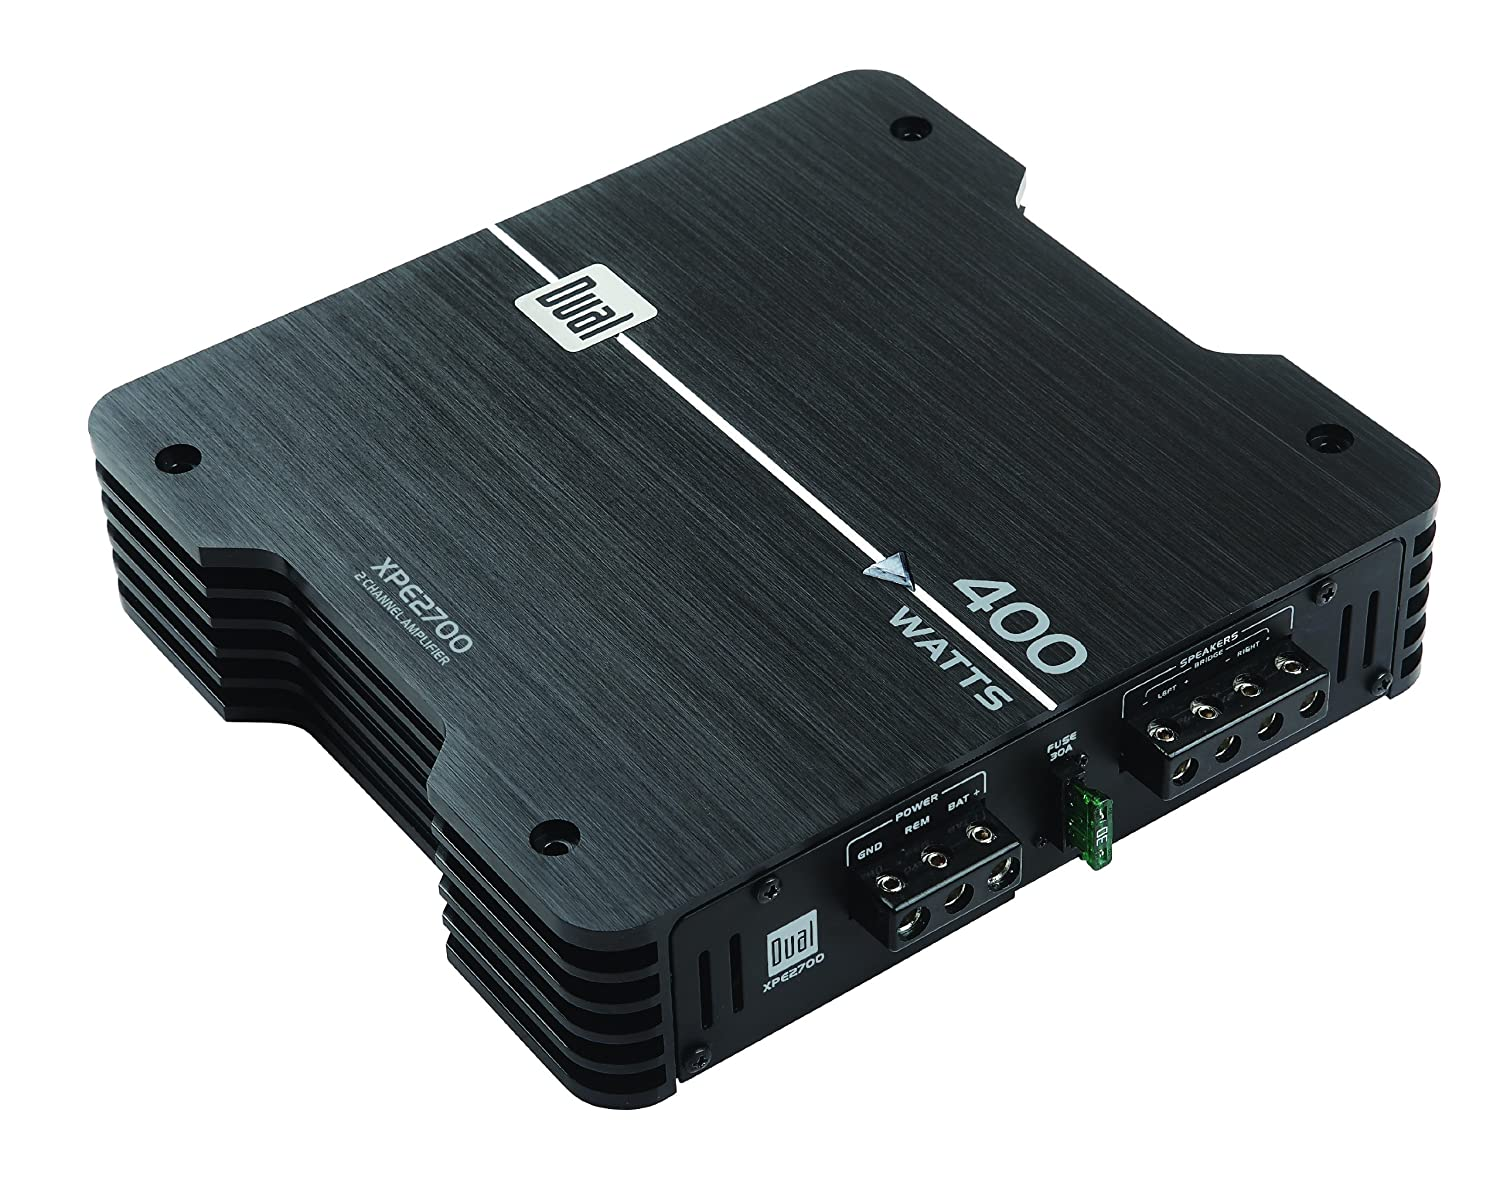 Amazon.com : Dual XPE2700 400-Watt Max 2-Channel MOSFET XPE Series Power Amplifier : Vehicle Multi Channel Amplifiers